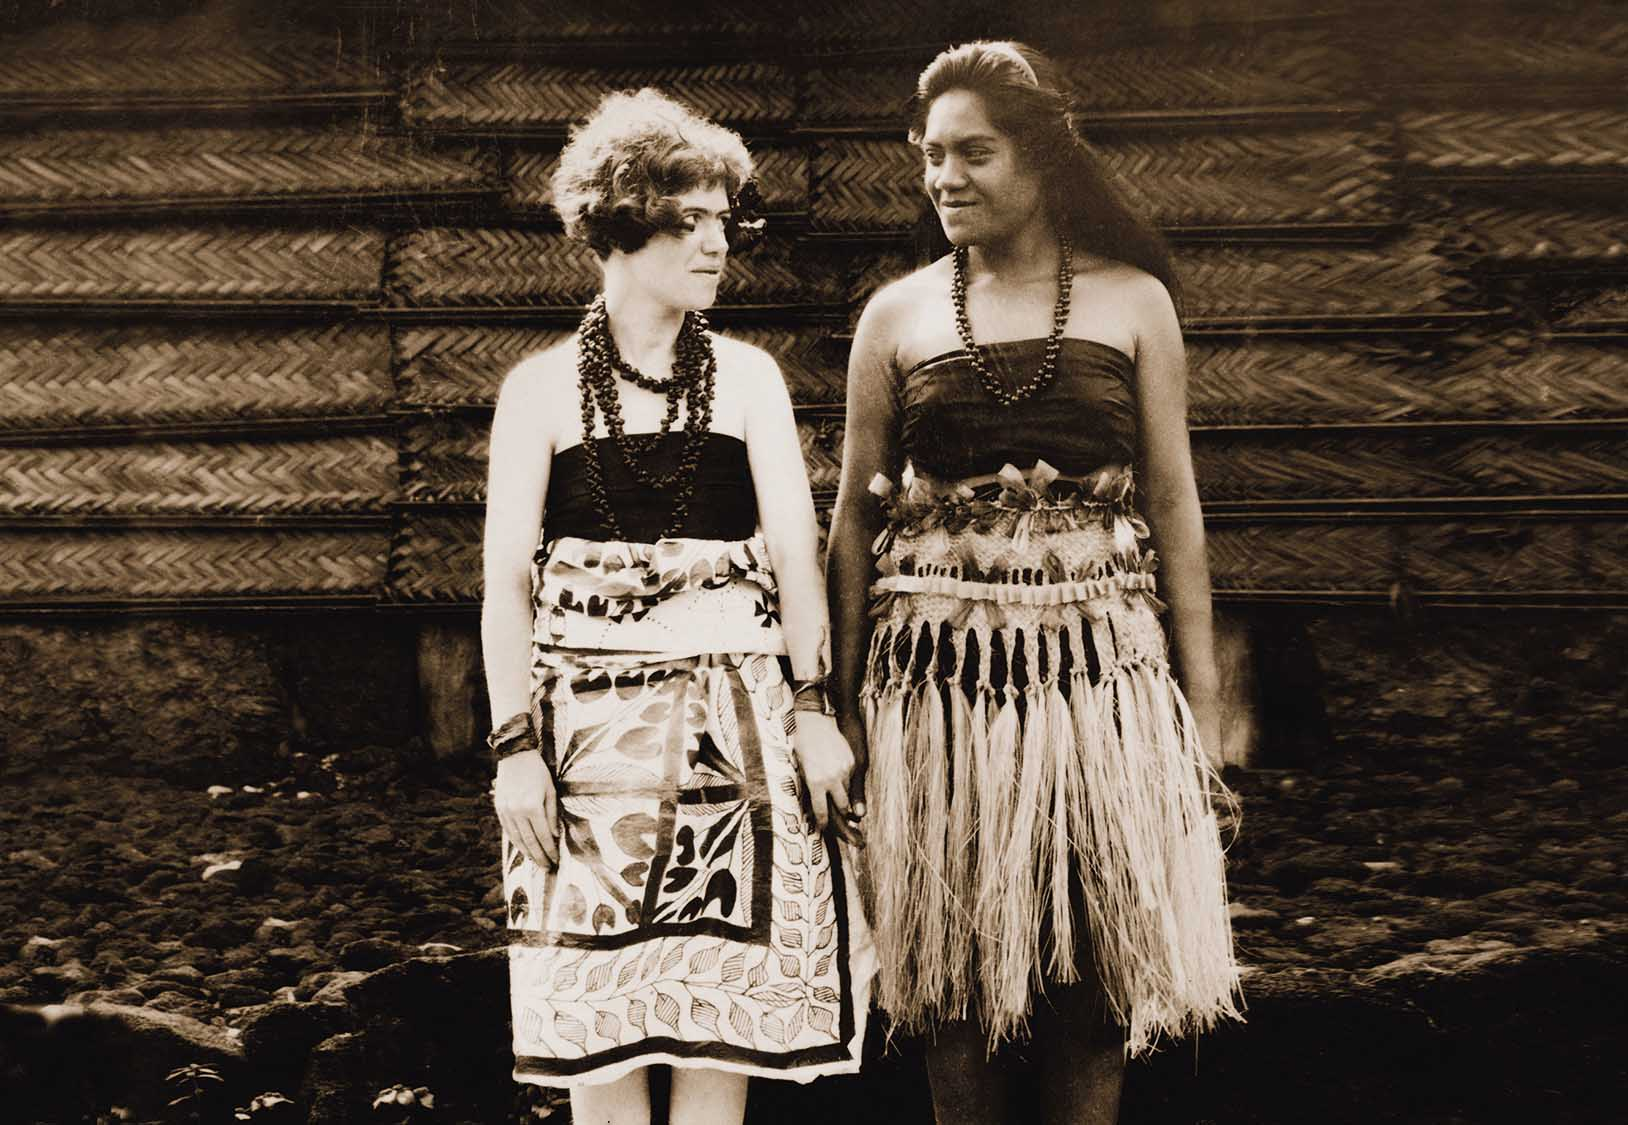 Dr. Margaret Mead in Samoan clothing with Fa & # 39; amotu.